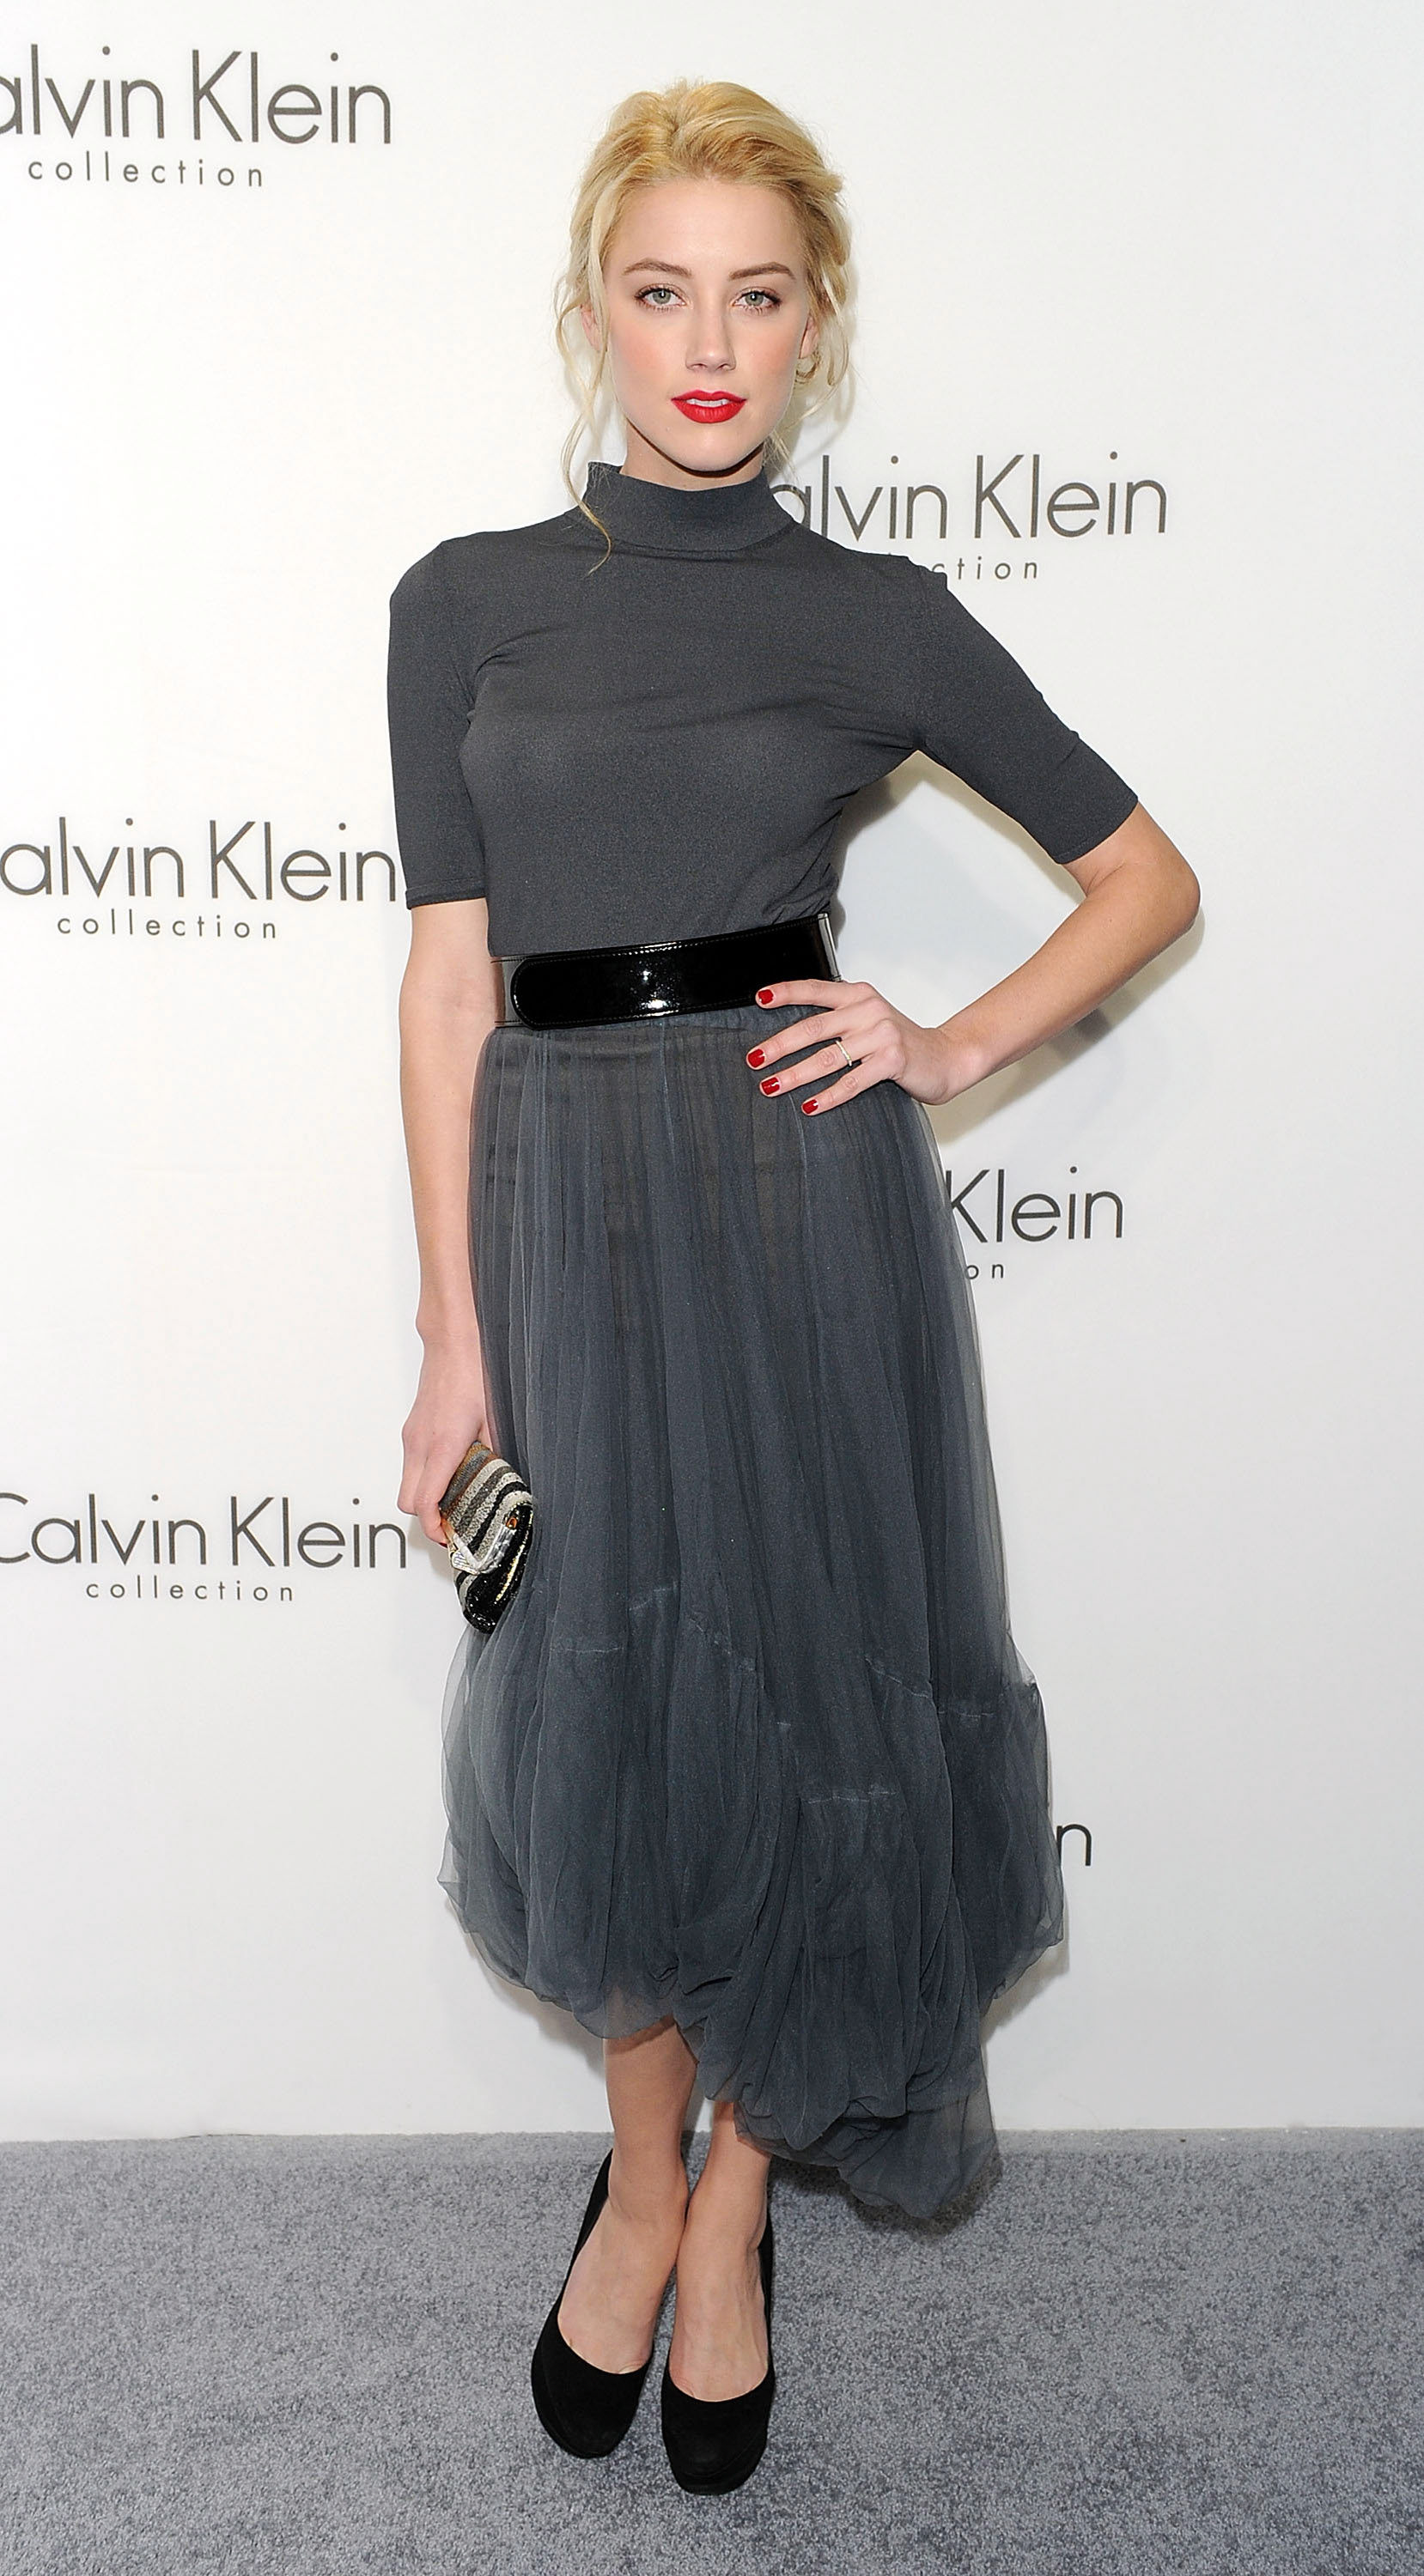 87251_amber_heard_calvin_klein_after_party-3_122_60lo.jpg